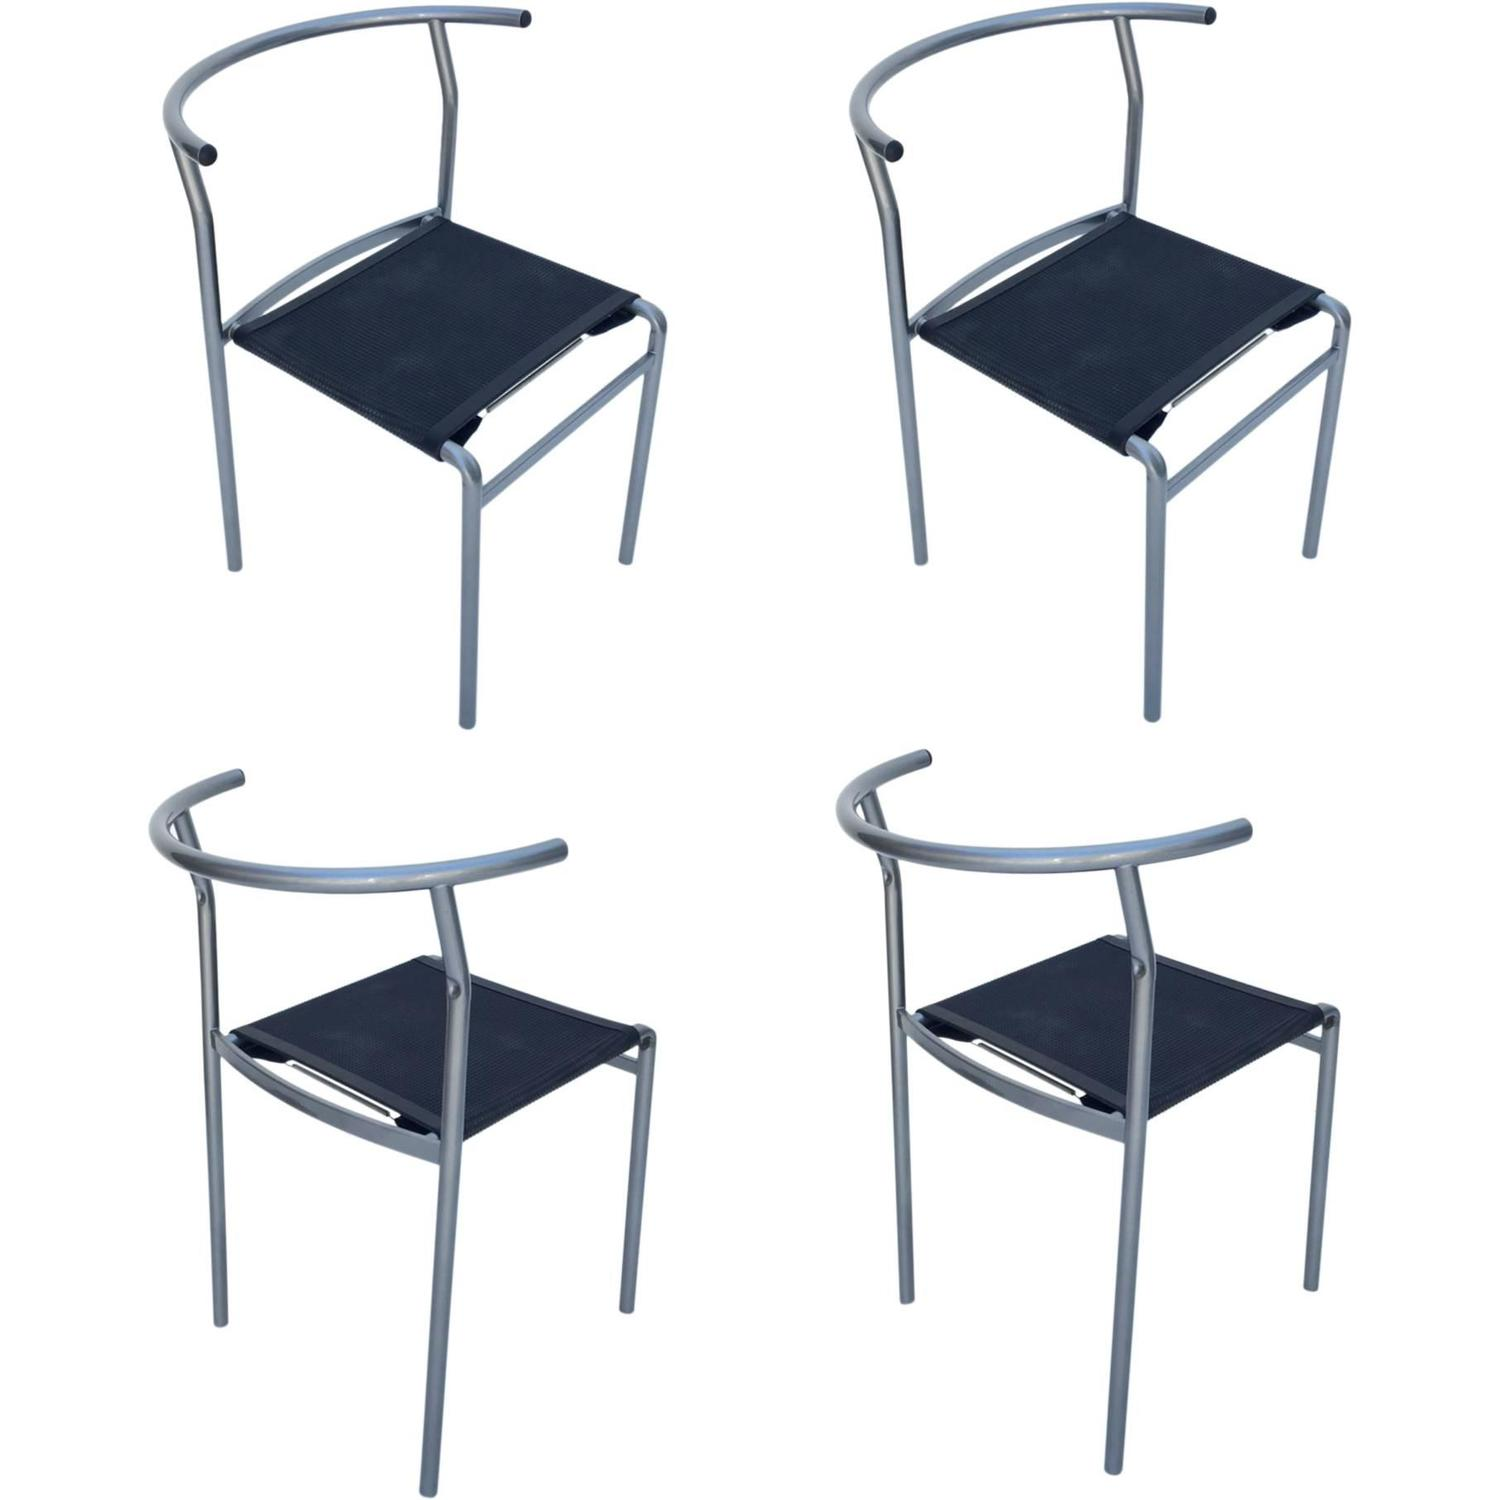 Four Caf  Staking Chairs by Philippe Starck for Cerruti Baleri   Aluminium Hudson Chair by Philippe Starck for Emeco For Sale at  . Phillip Stark Chairs. Home Design Ideas